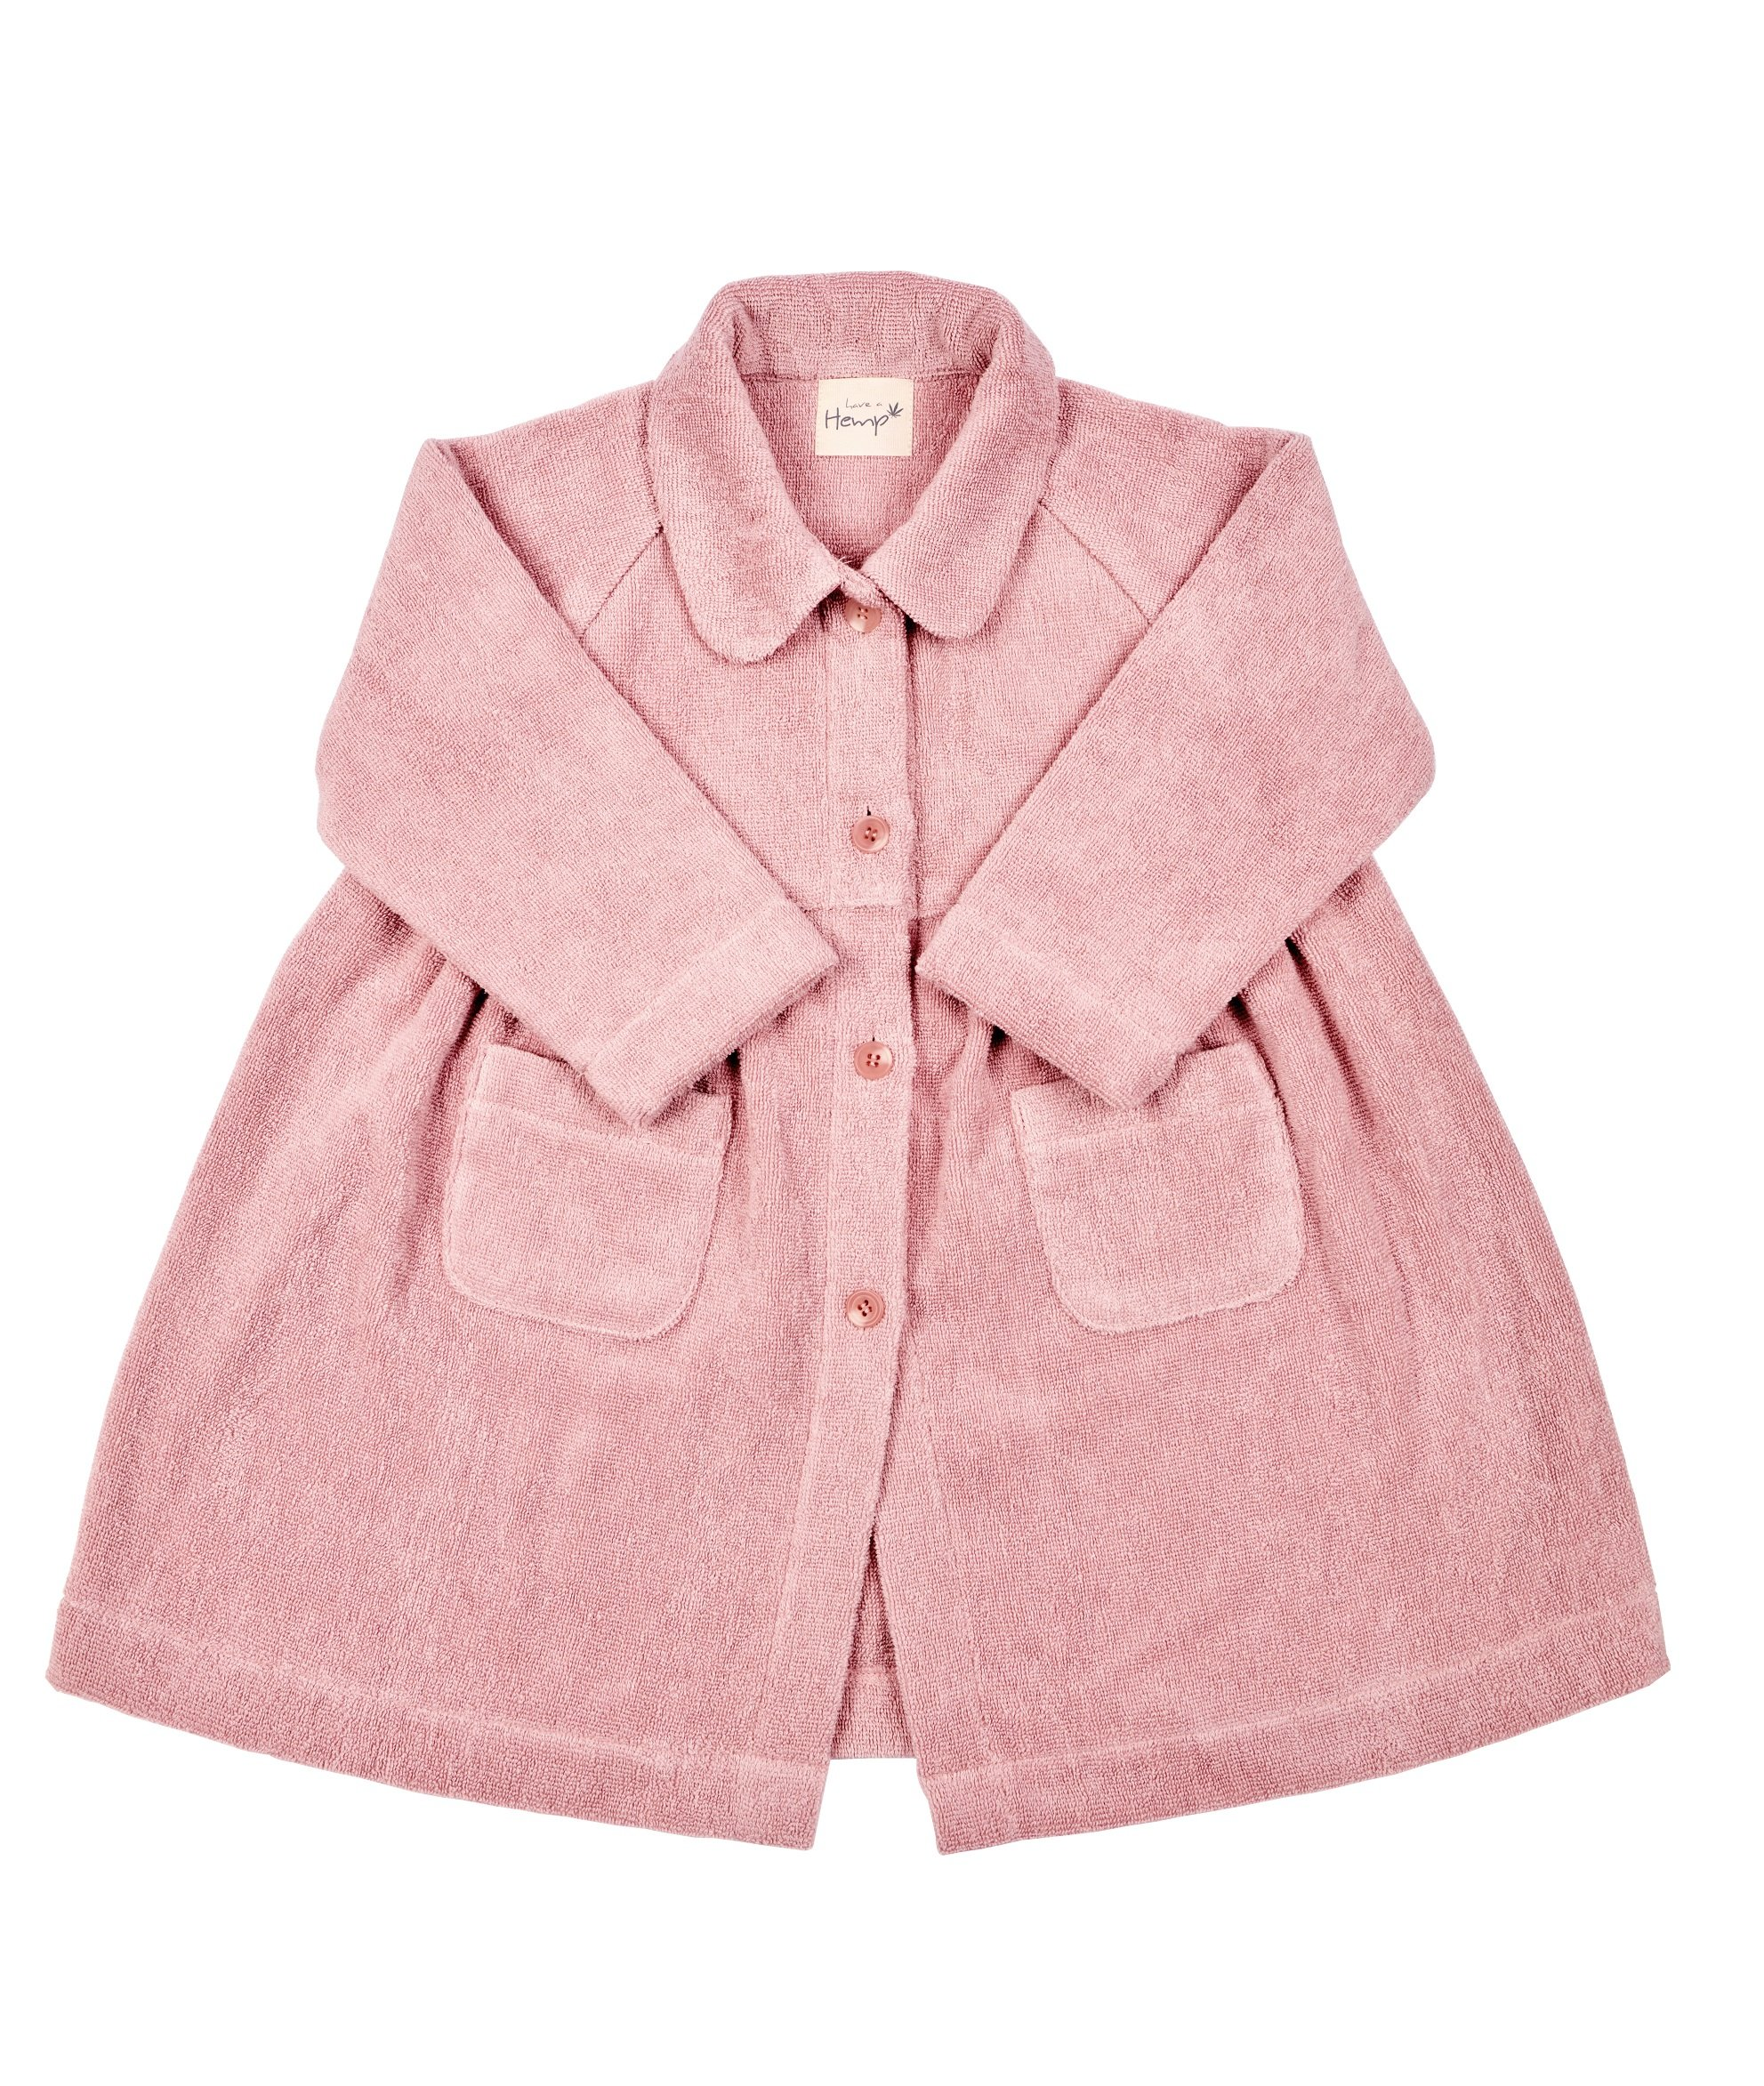 Hemp Bath & Beach Robe Dress for Girls, Sustainable and Eco-Friendly (Pink) by have a Hemp